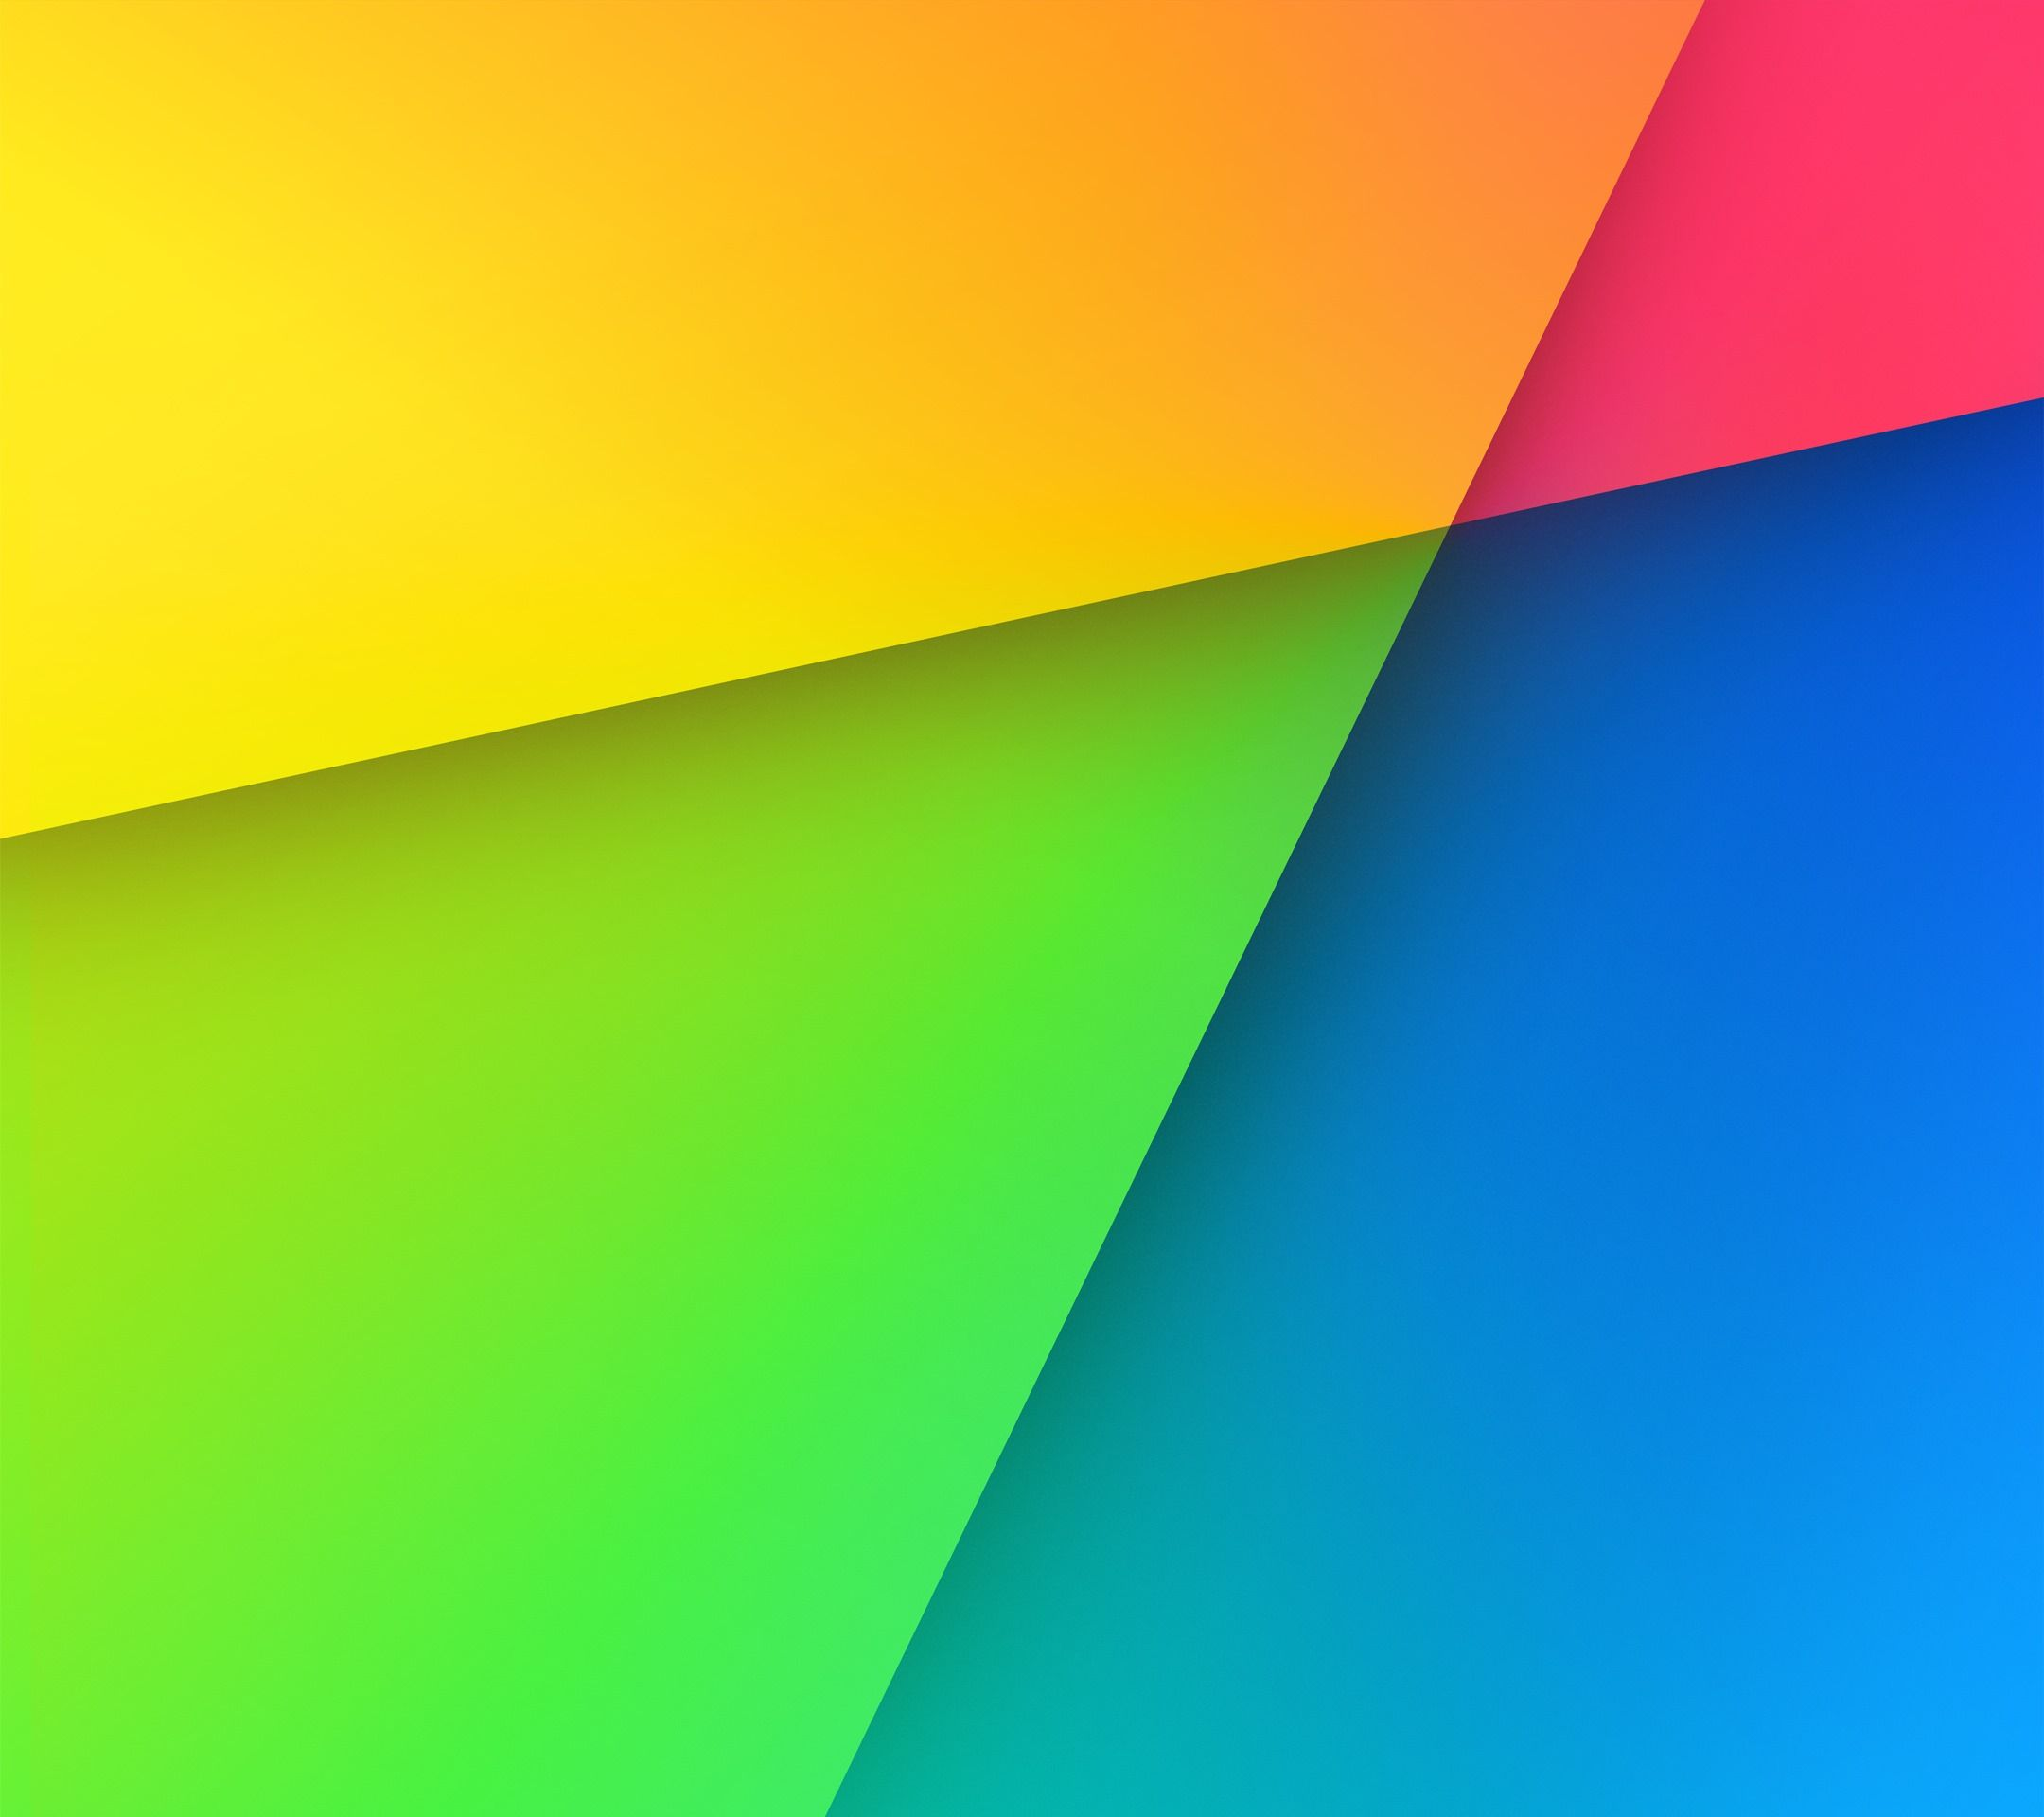 Download: Wallpapers From The New Nexus 7 [Updated]